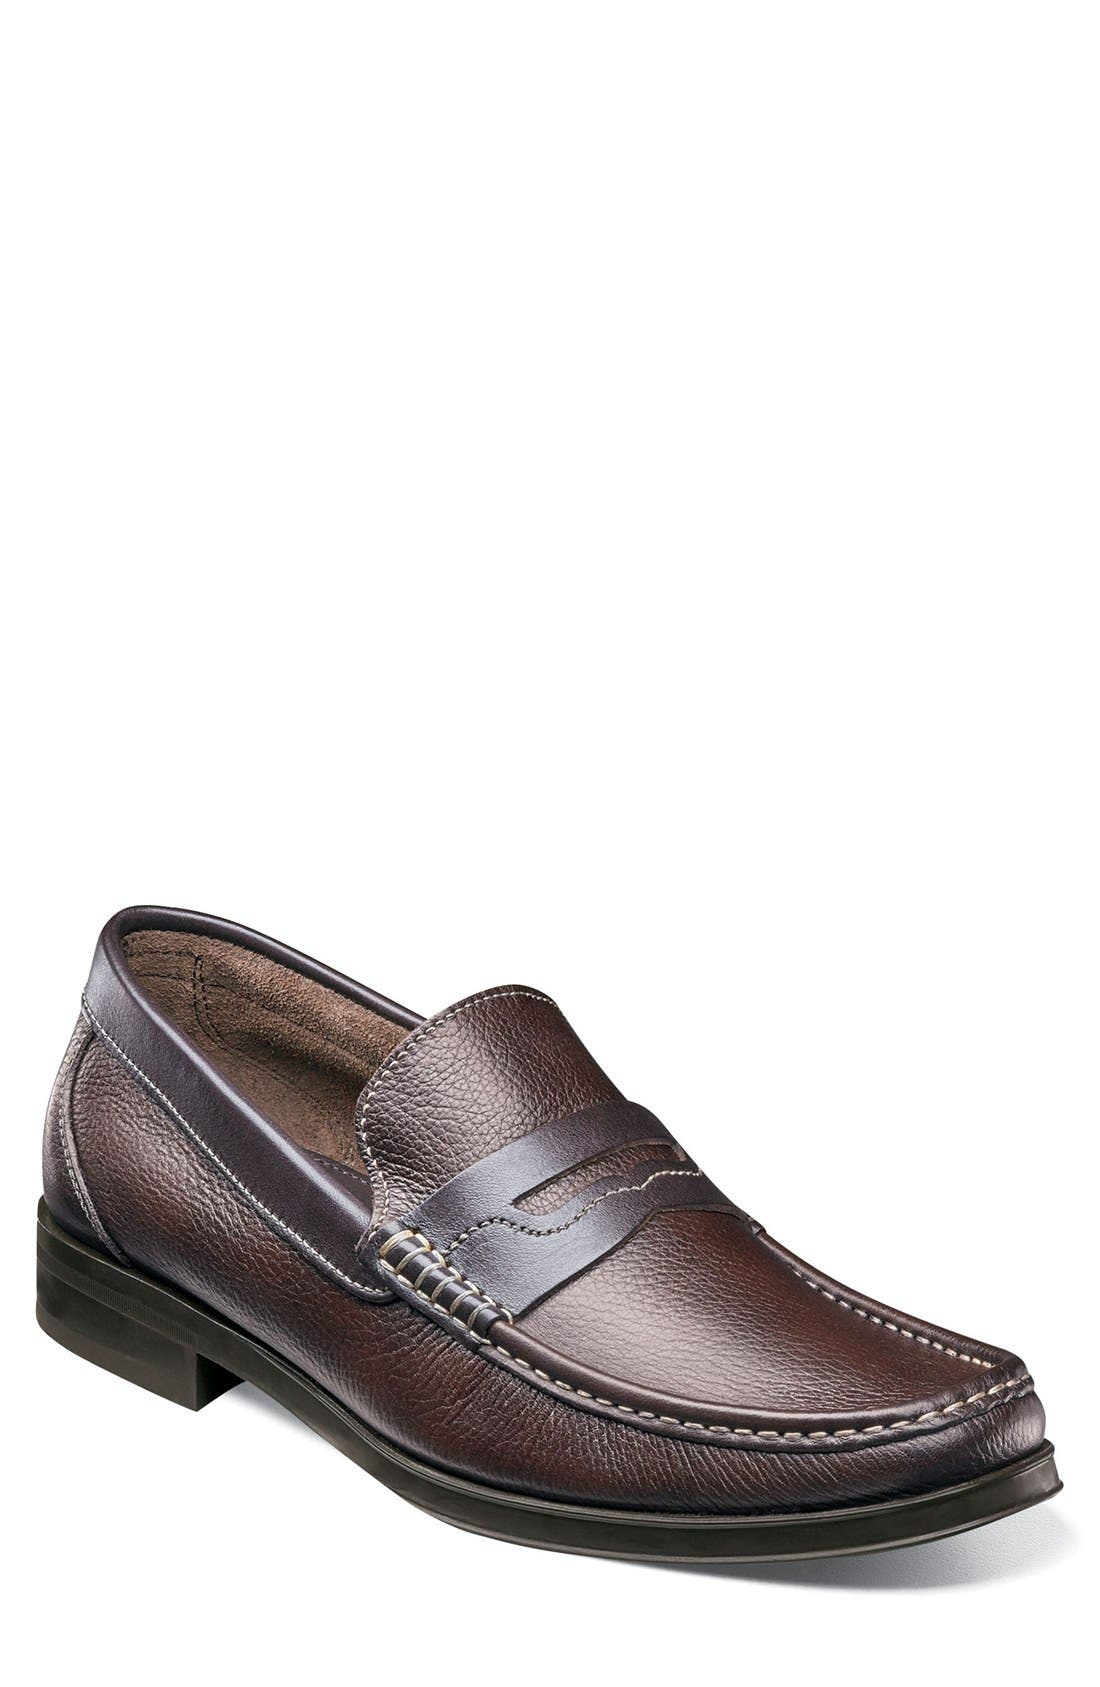 Westbrook Penny Loafer,                             Main thumbnail 3, color,